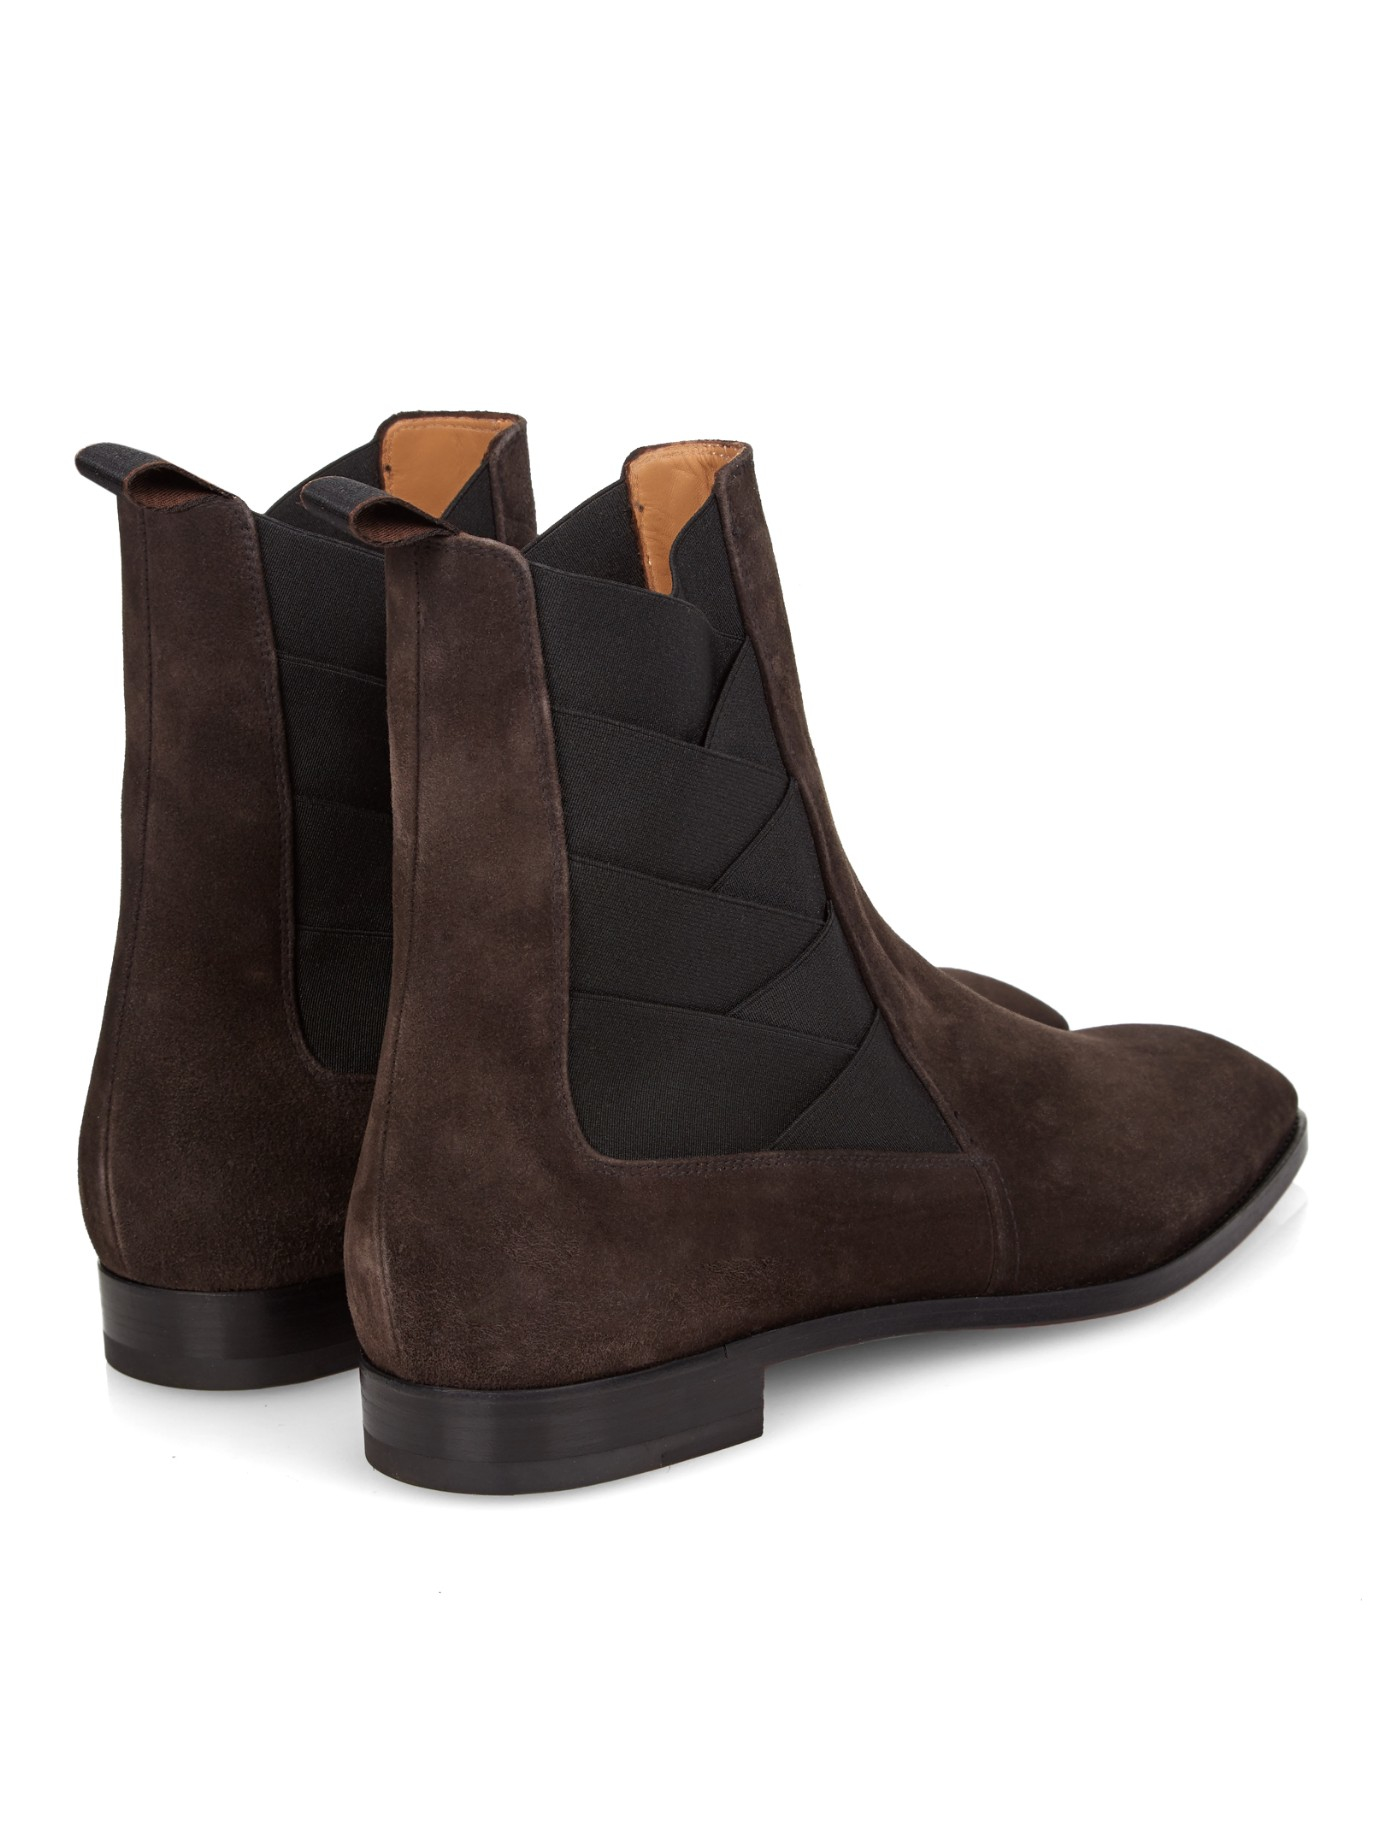 Christian louboutin Brian Suede Ankle Boots in Brown for Men | Lyst